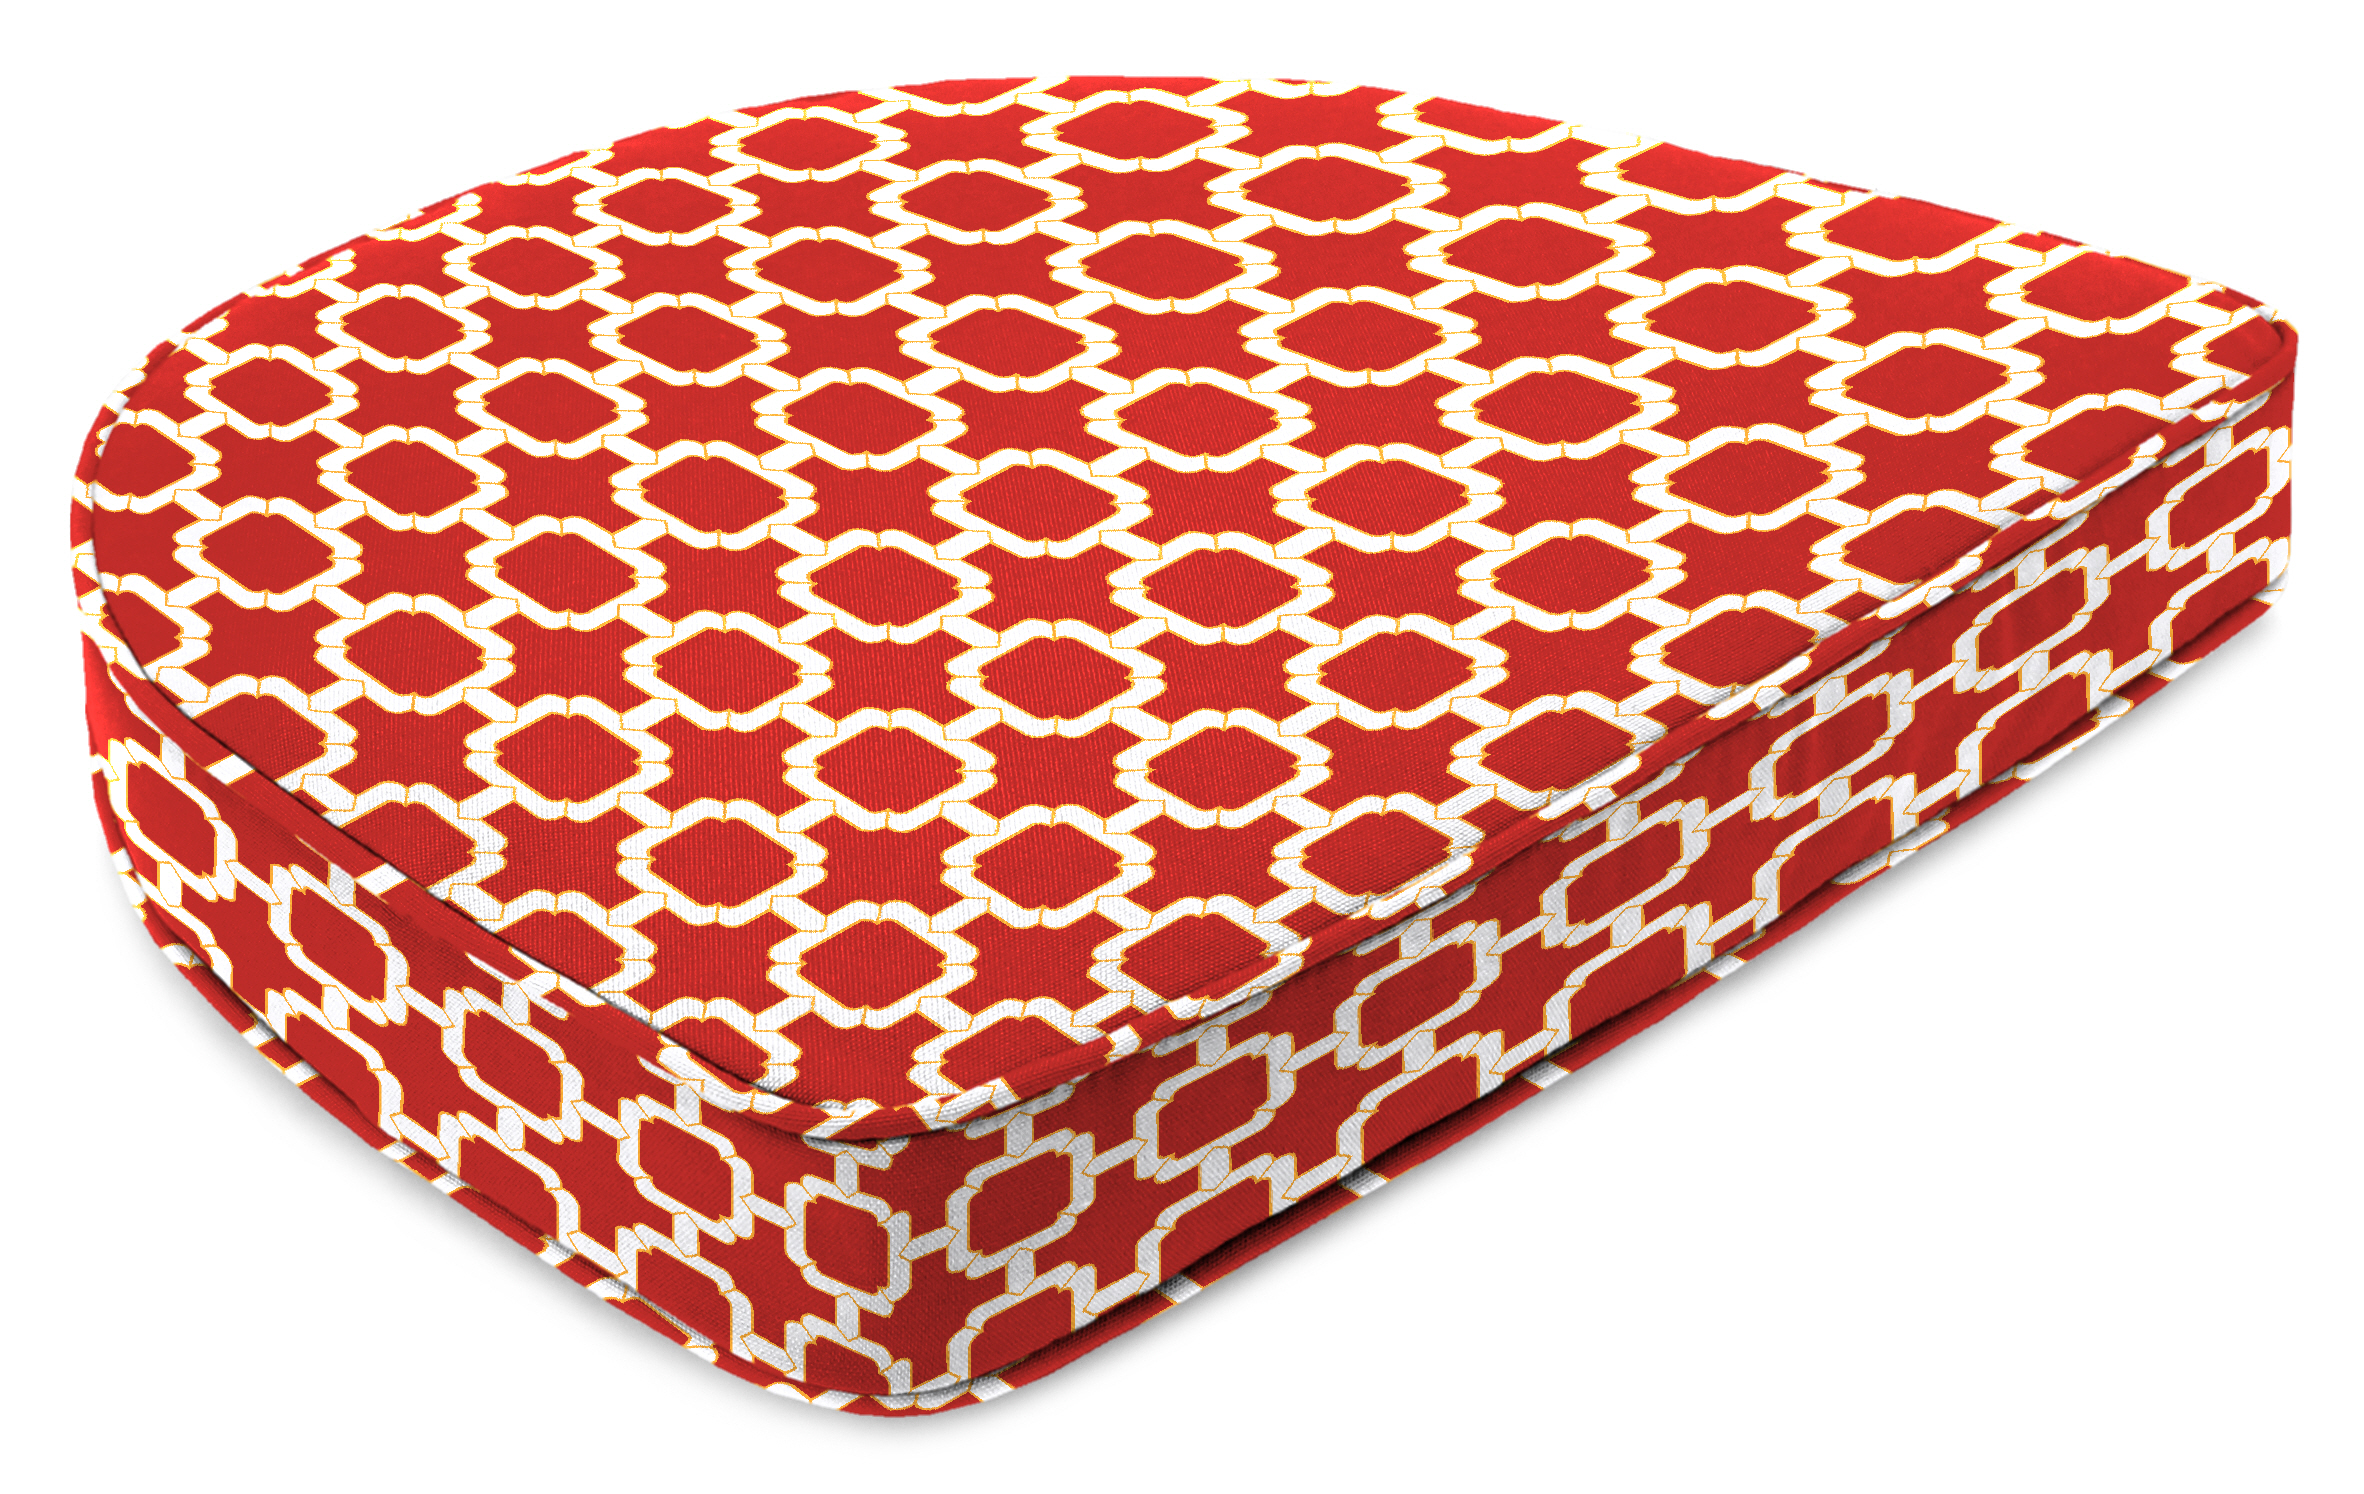 Jordan Manufacturing Co., Inc. Contoured Boxed Patio Chair Cushion in Hockley Red